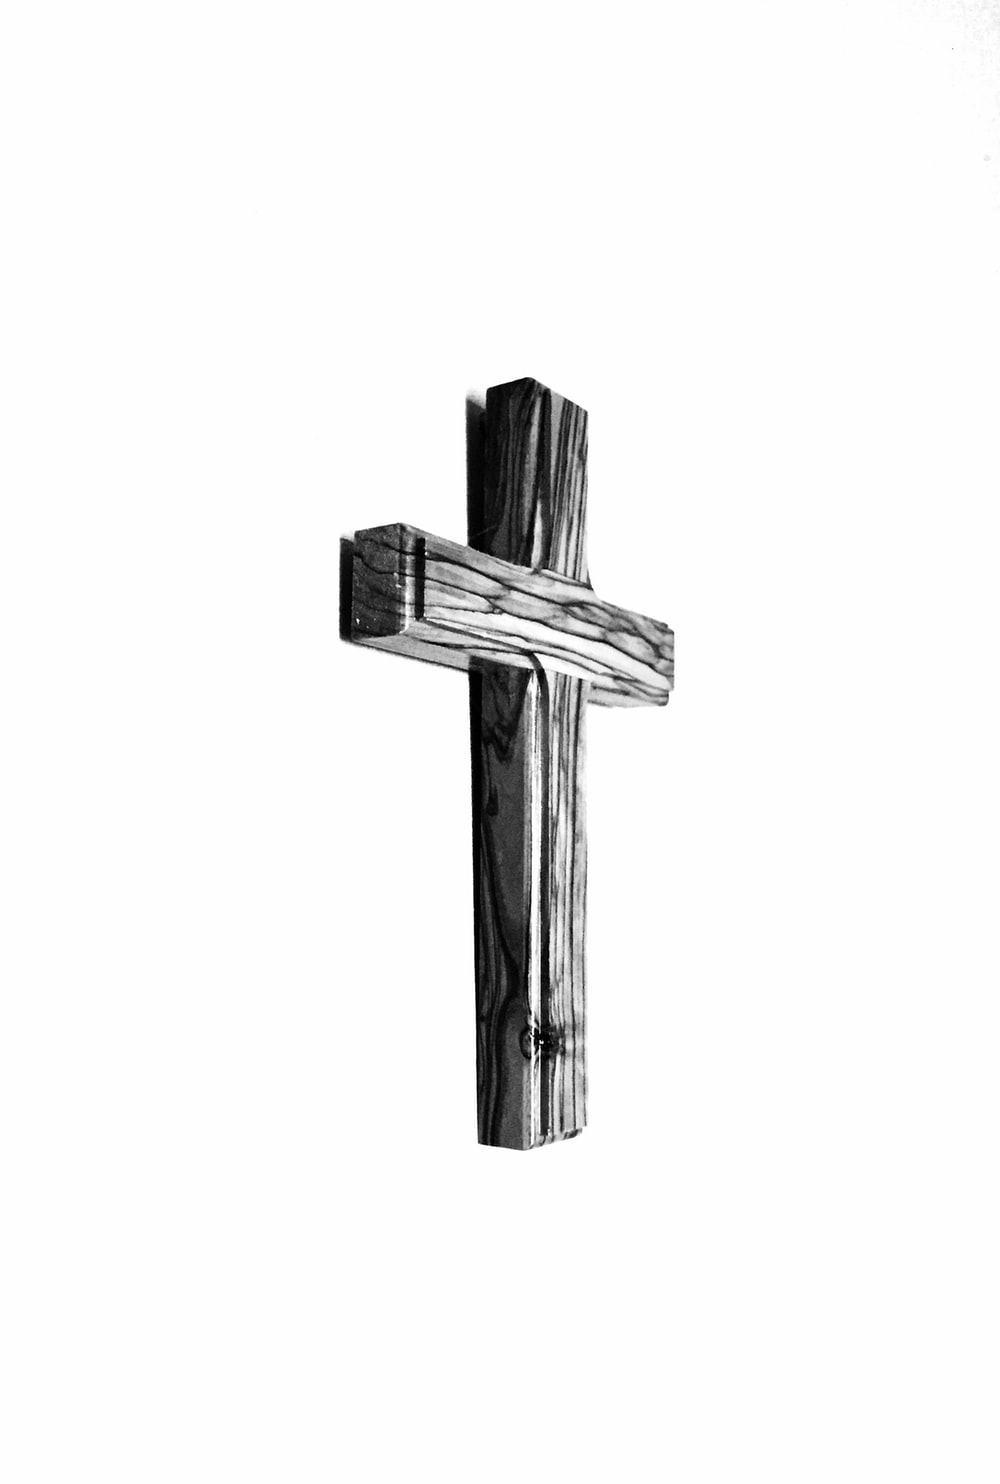 wooden cross illustration